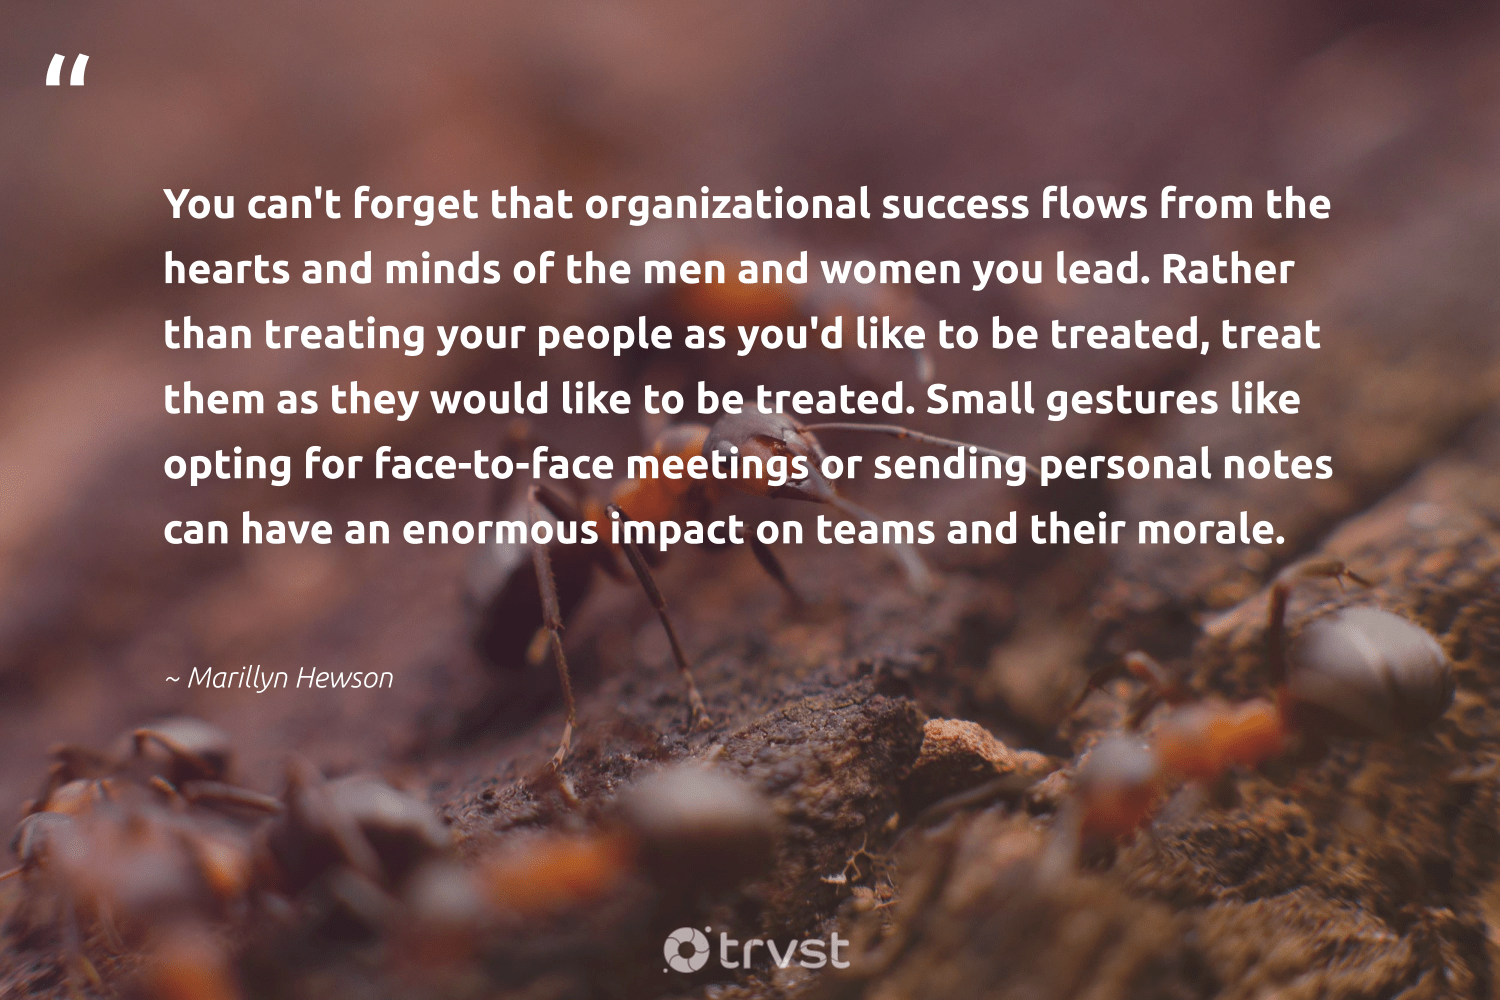 """""""You can't forget that organizational success flows from the hearts and minds of the men and women you lead. Rather than treating your people as you'd like to be treated, treat them as they would like to be treated. Small gestures like opting for face-to-face meetings or sending personal notes can have an enormous impact on teams and their morale.""""  - Marillyn Hewson #trvst #quotes #impact #women #success #motivational #socialchange #softskills #beinspired #motivation #dogood #futureofwork"""